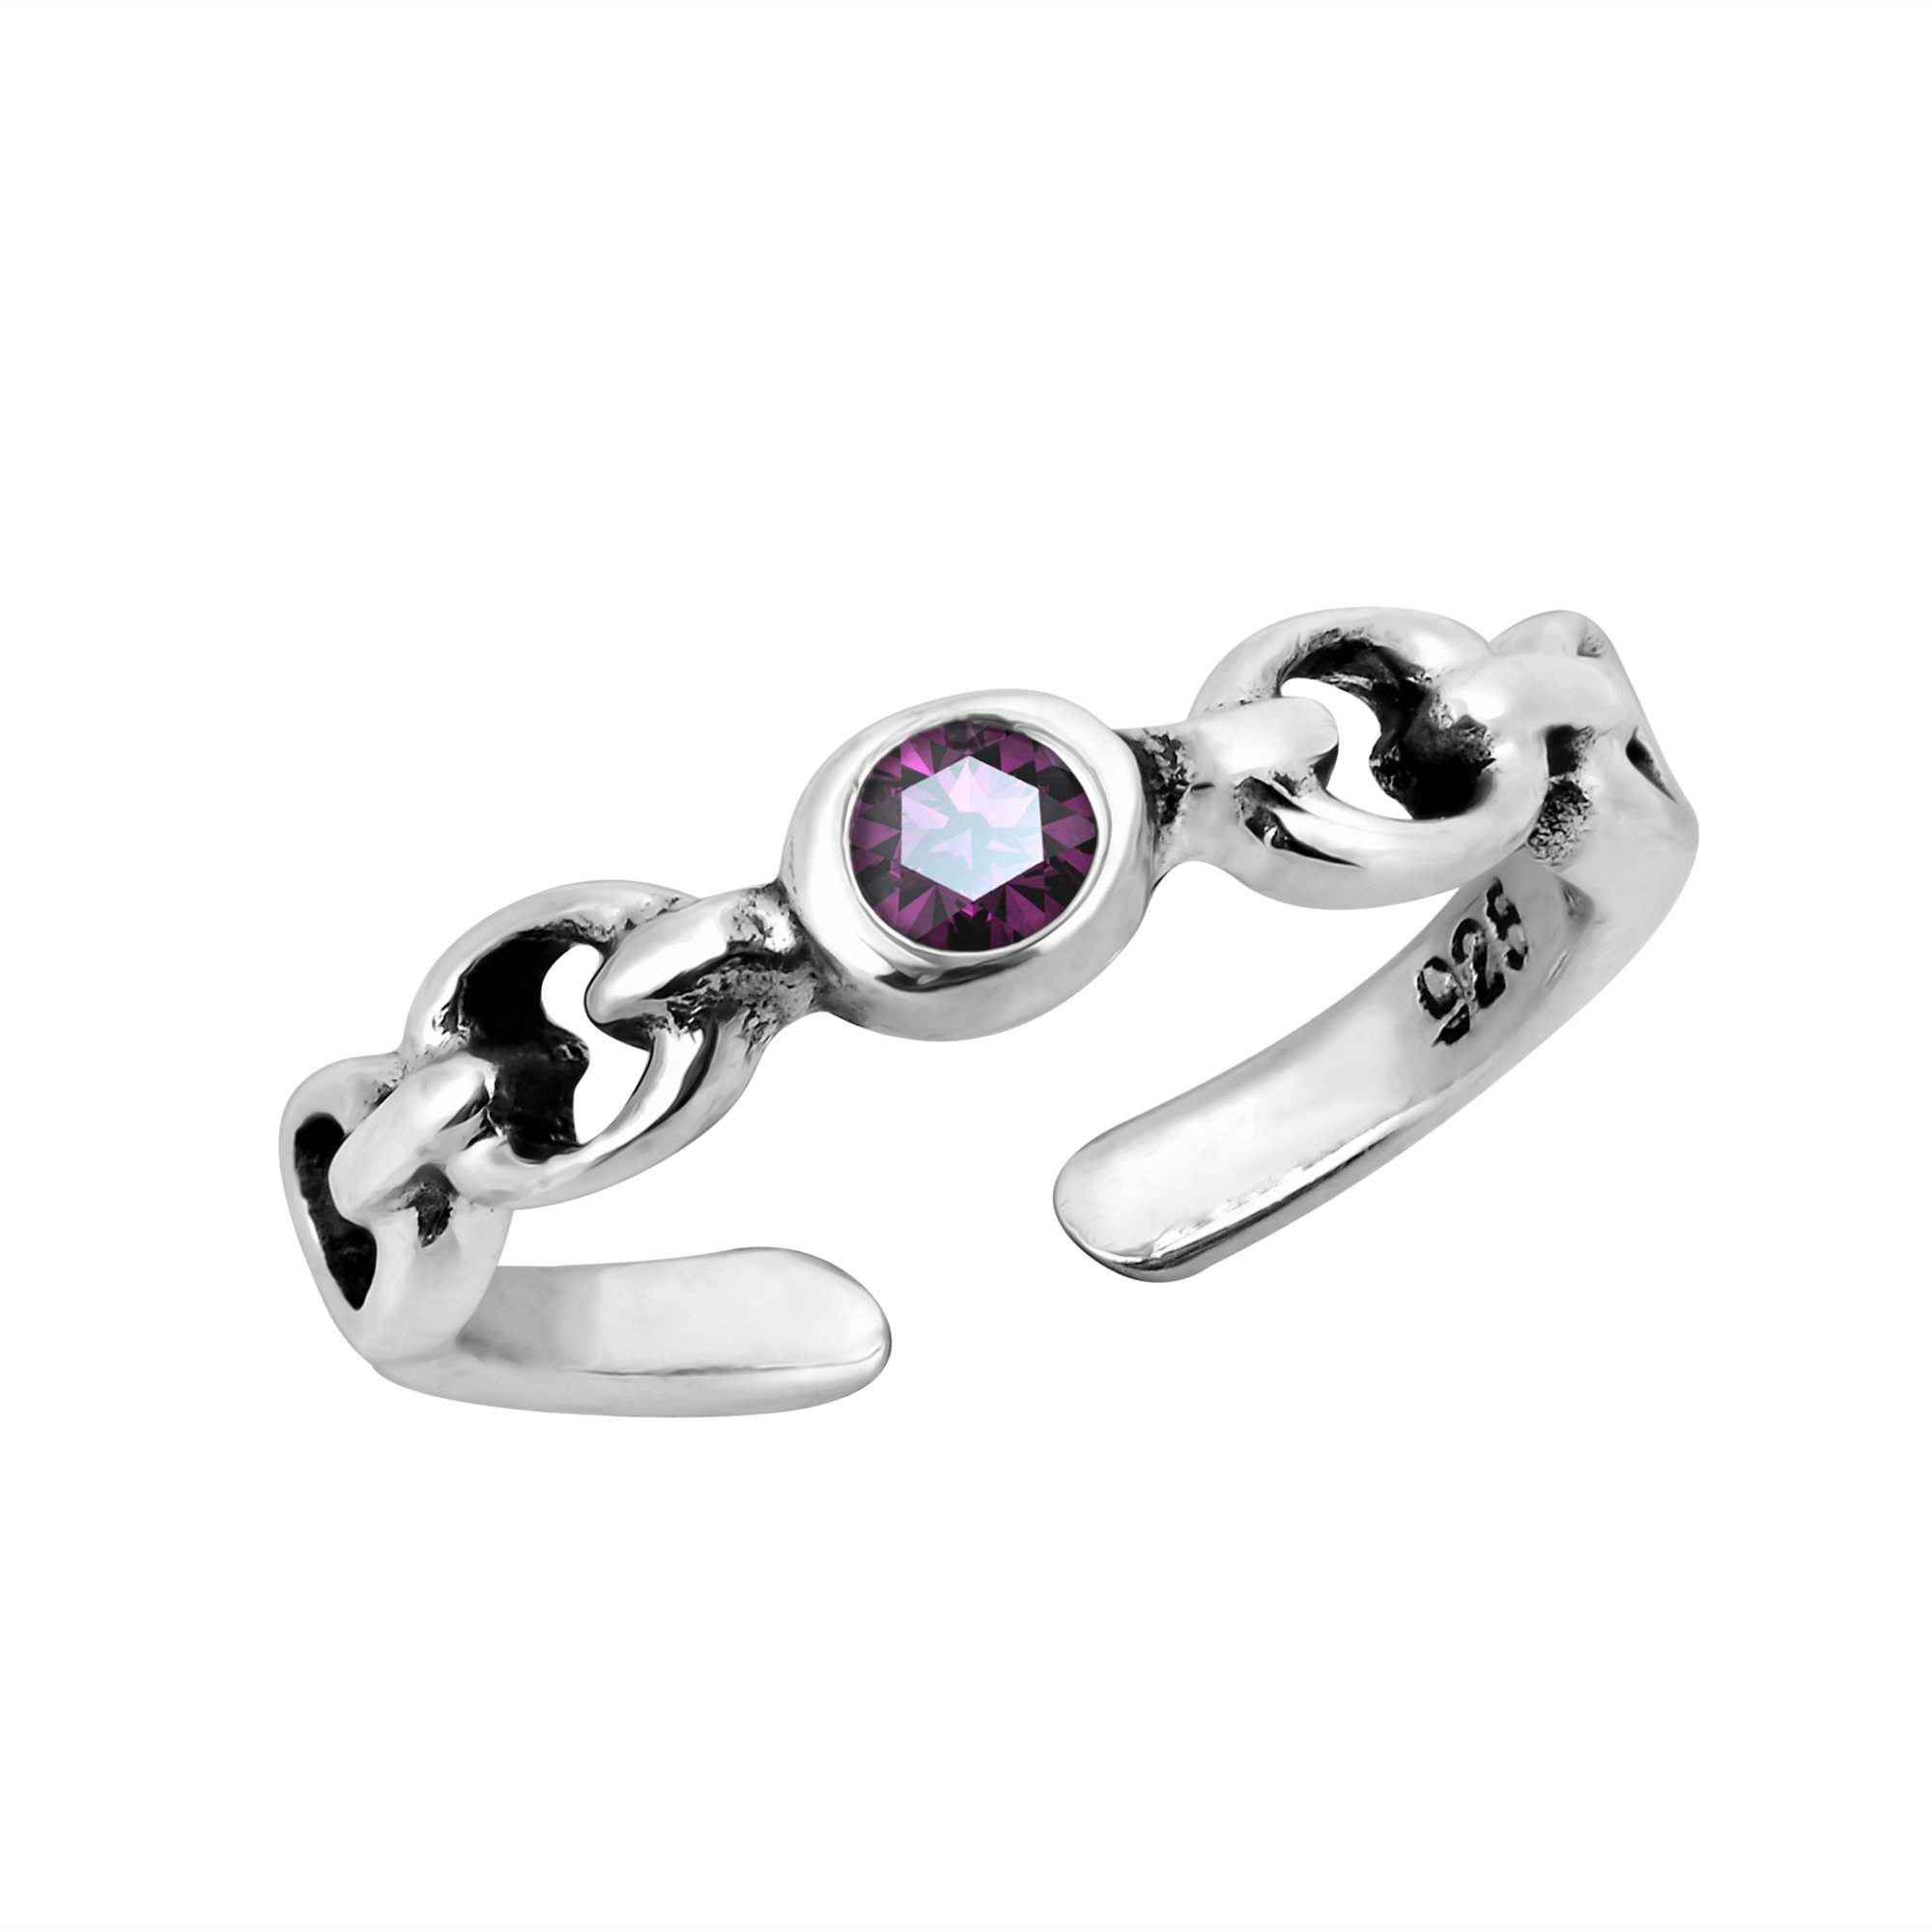 AeraVida Cute Purple Cubic Zirconia Chain Link .925 Sterling Silver Toe Ring or Pinky Ring